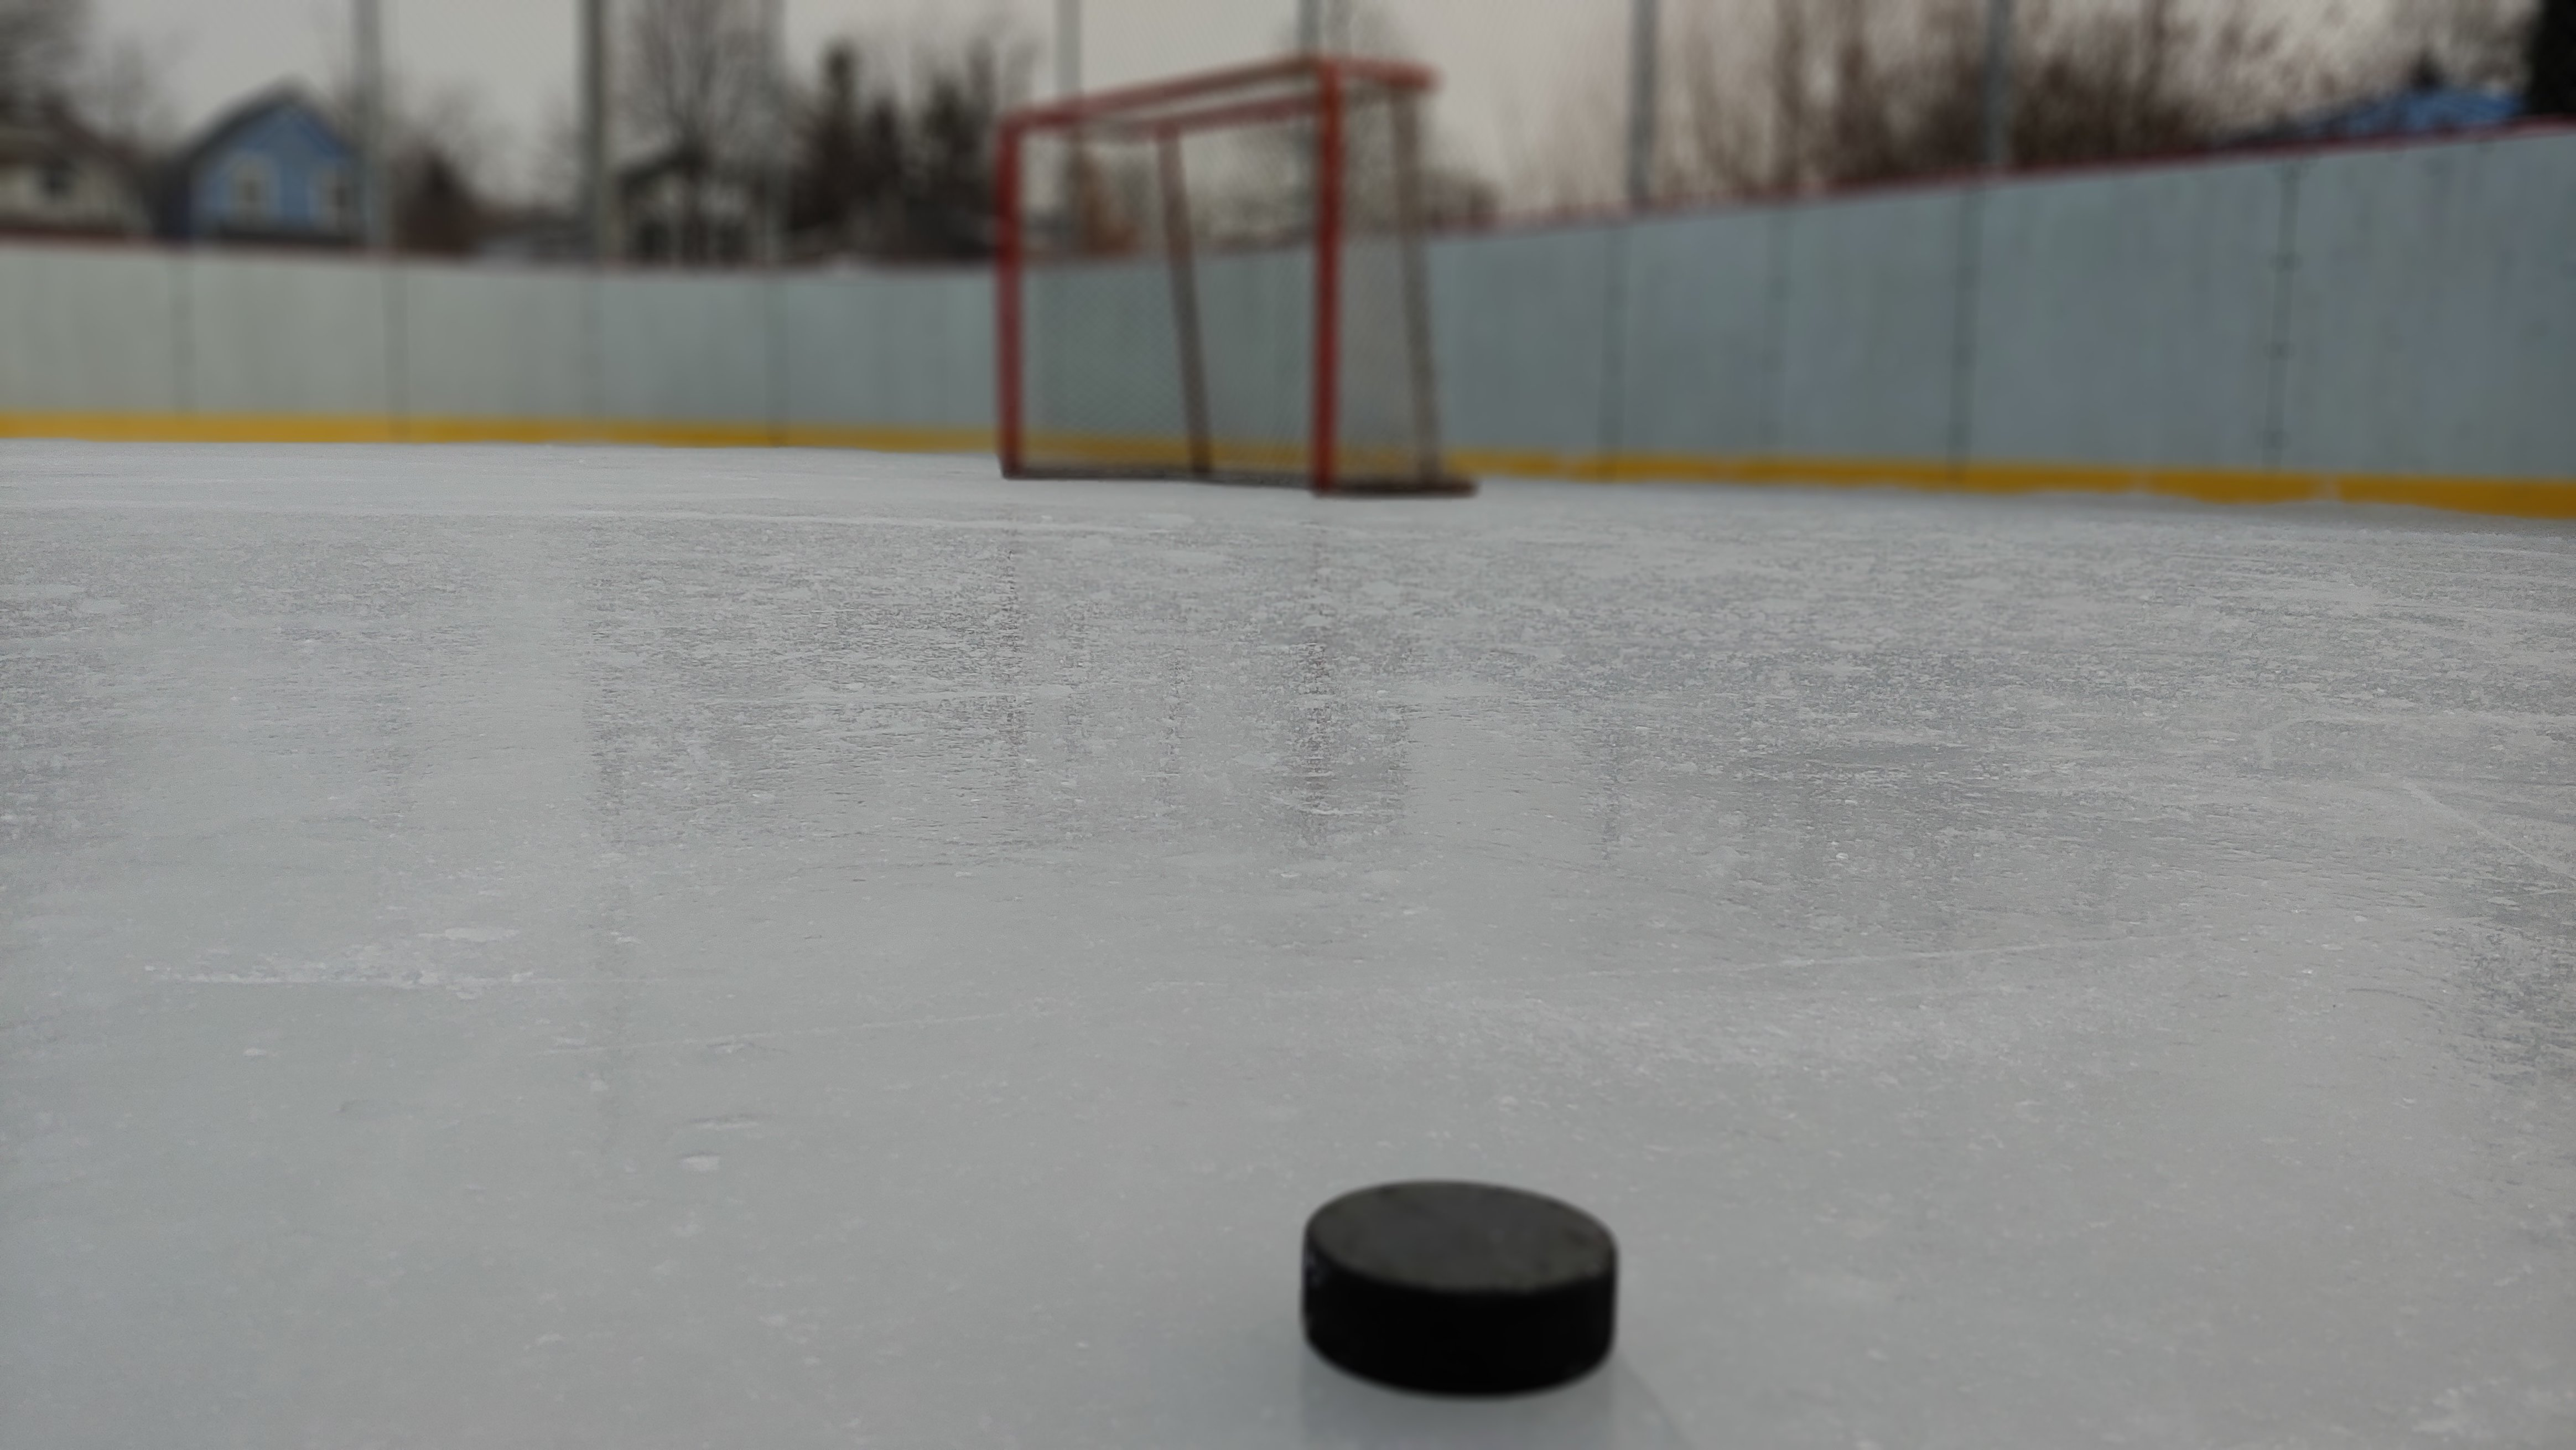 Hockey 4k Wallpapers For Your Desktop Or Mobile Screen Free And Easy To Download